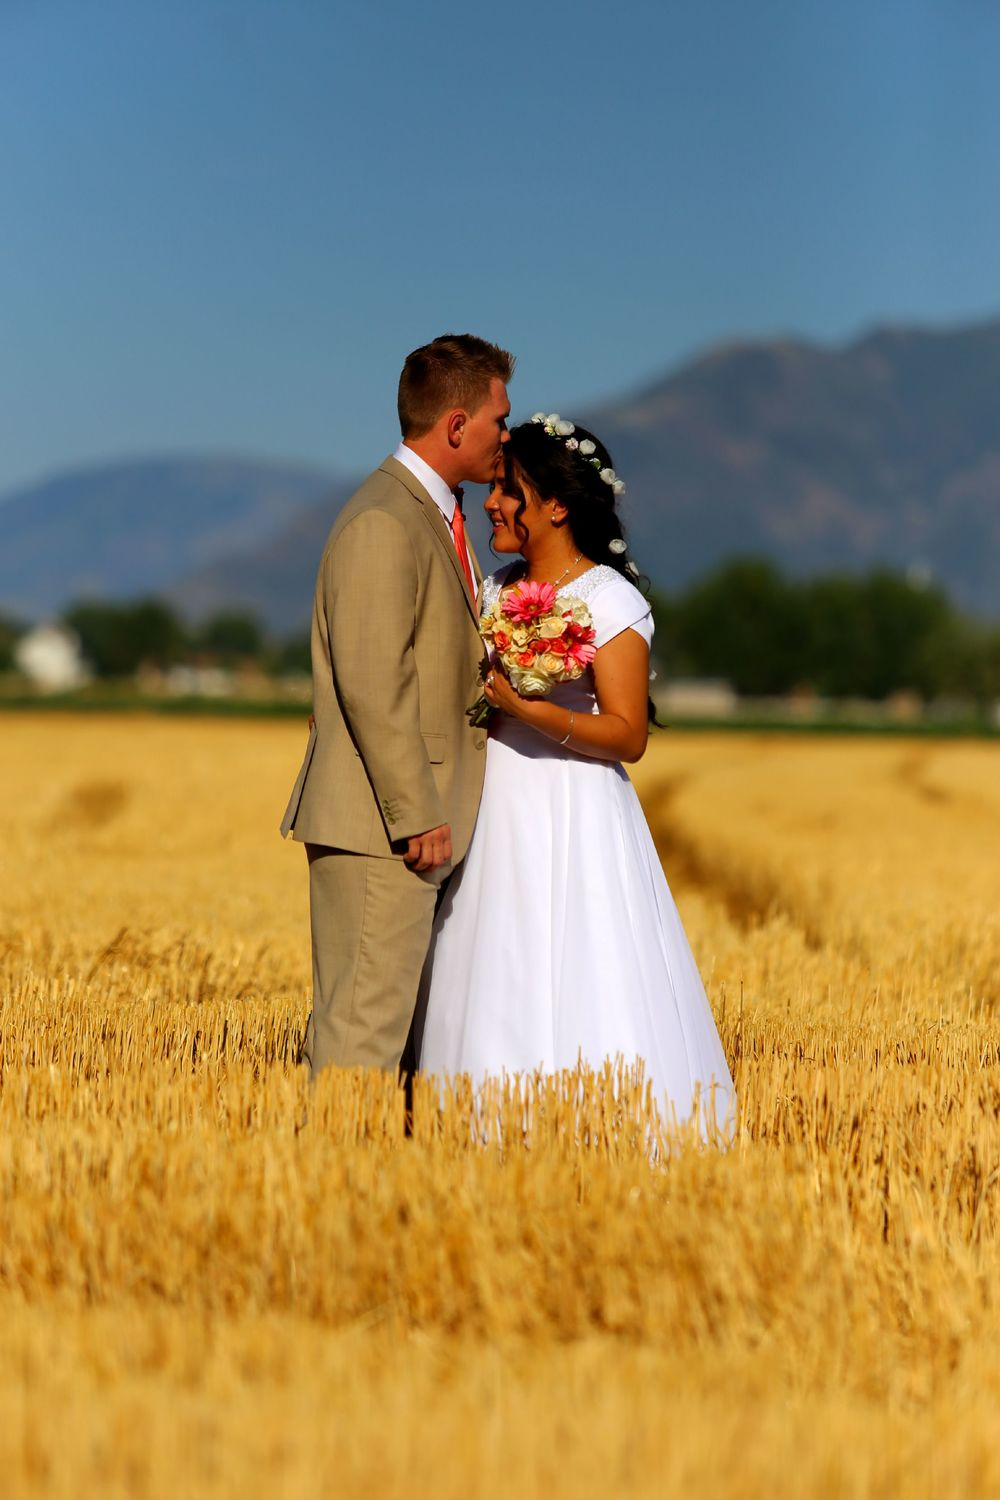 Bountiful wedding photography